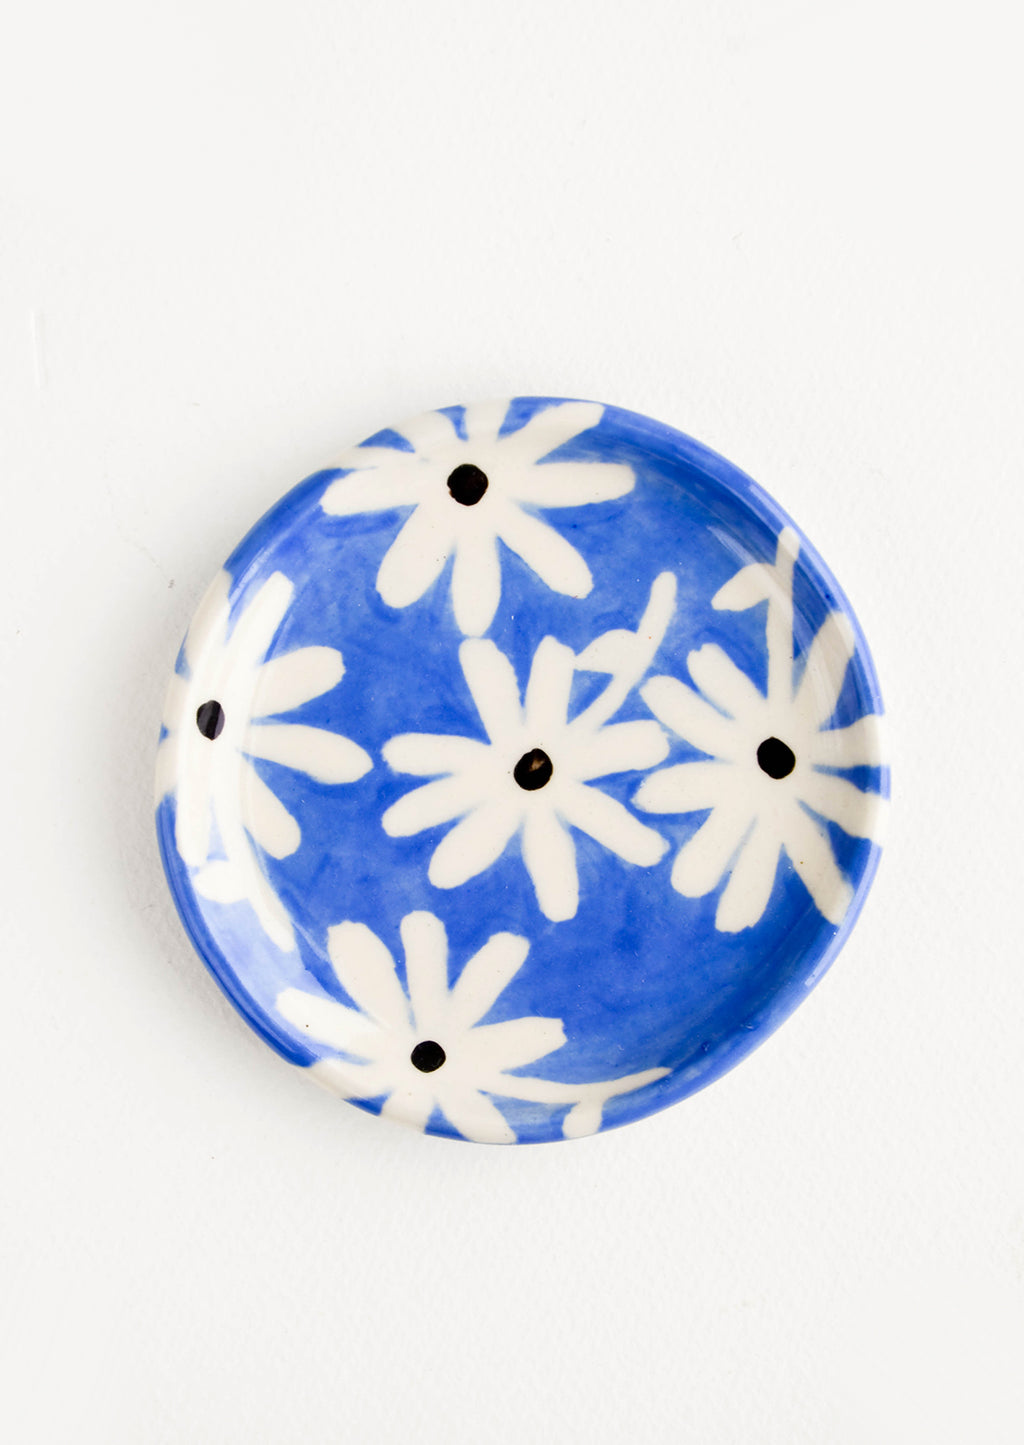 Blue Daisy: Small, round ceramic dish in blue with black and white daisies